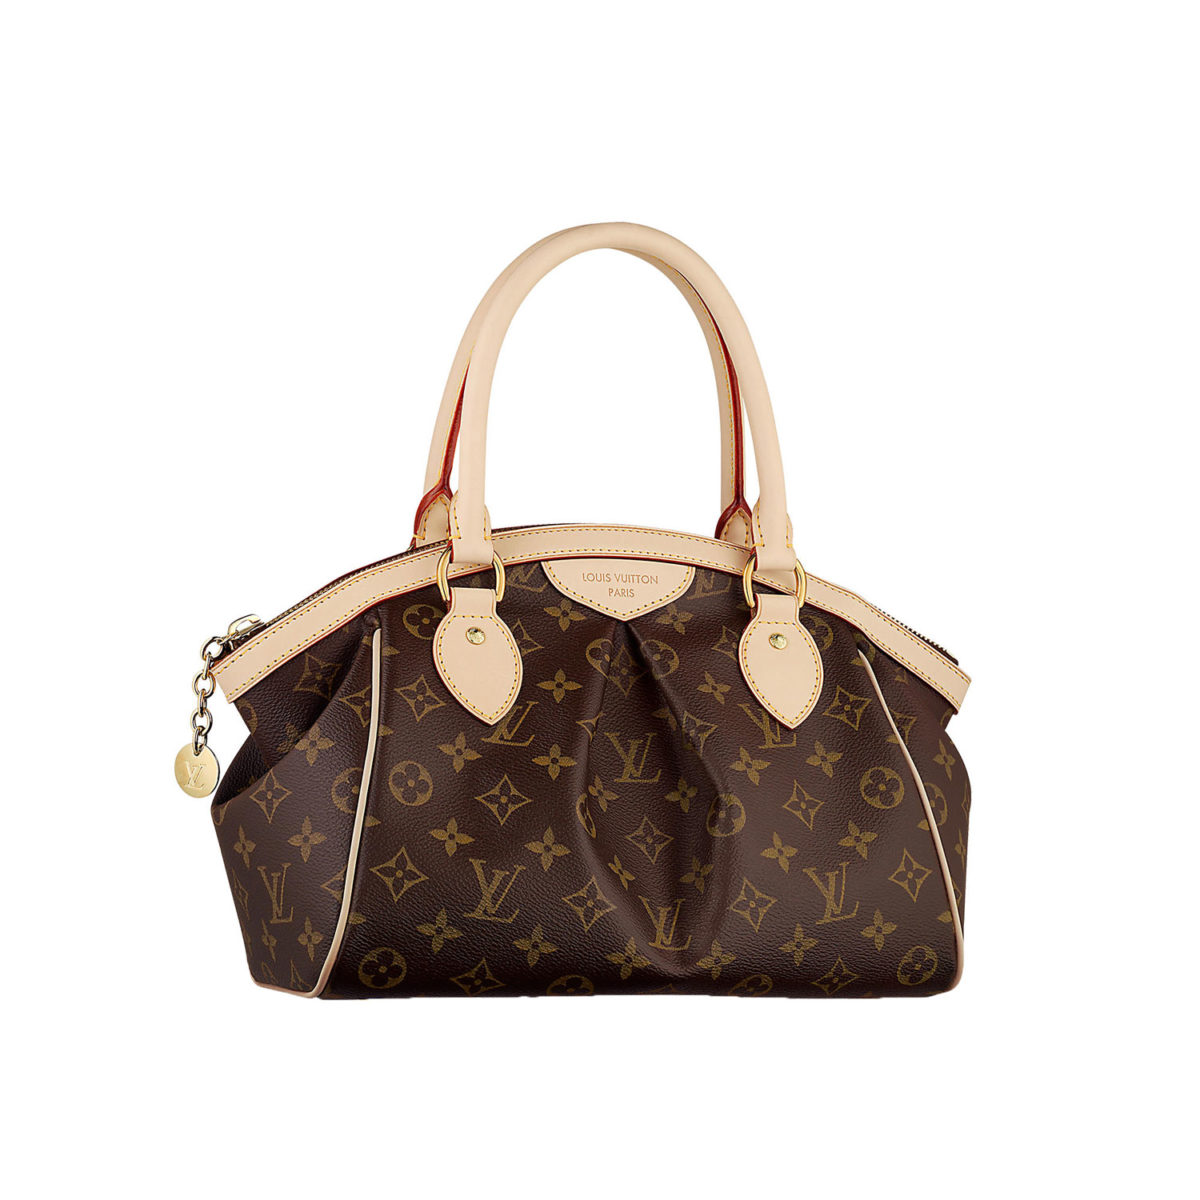 Louis vuitton tivoli pm celebrity babies